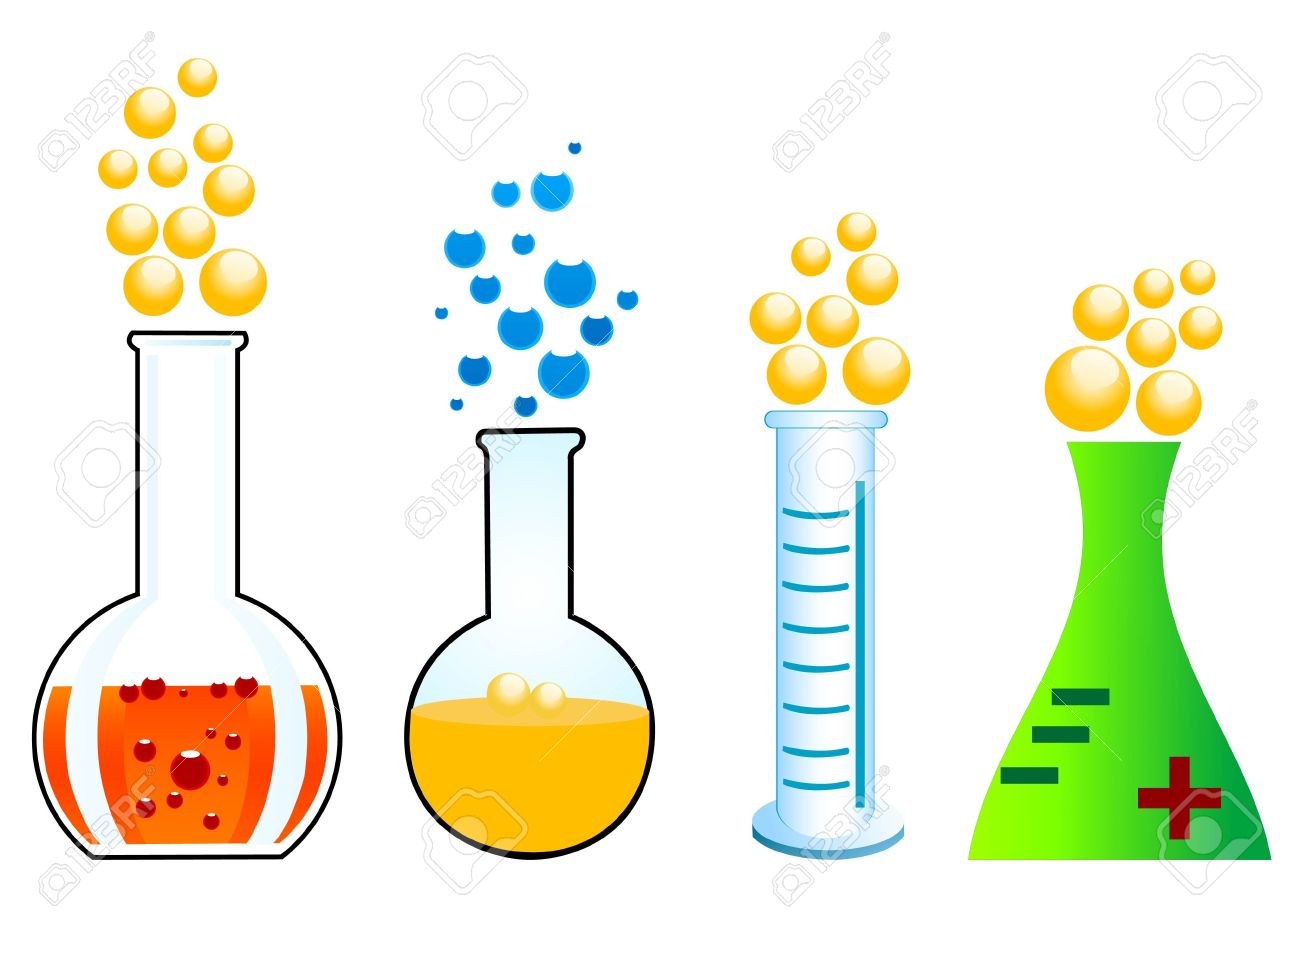 Chemical reaction clipart 1 » Clipart Station.